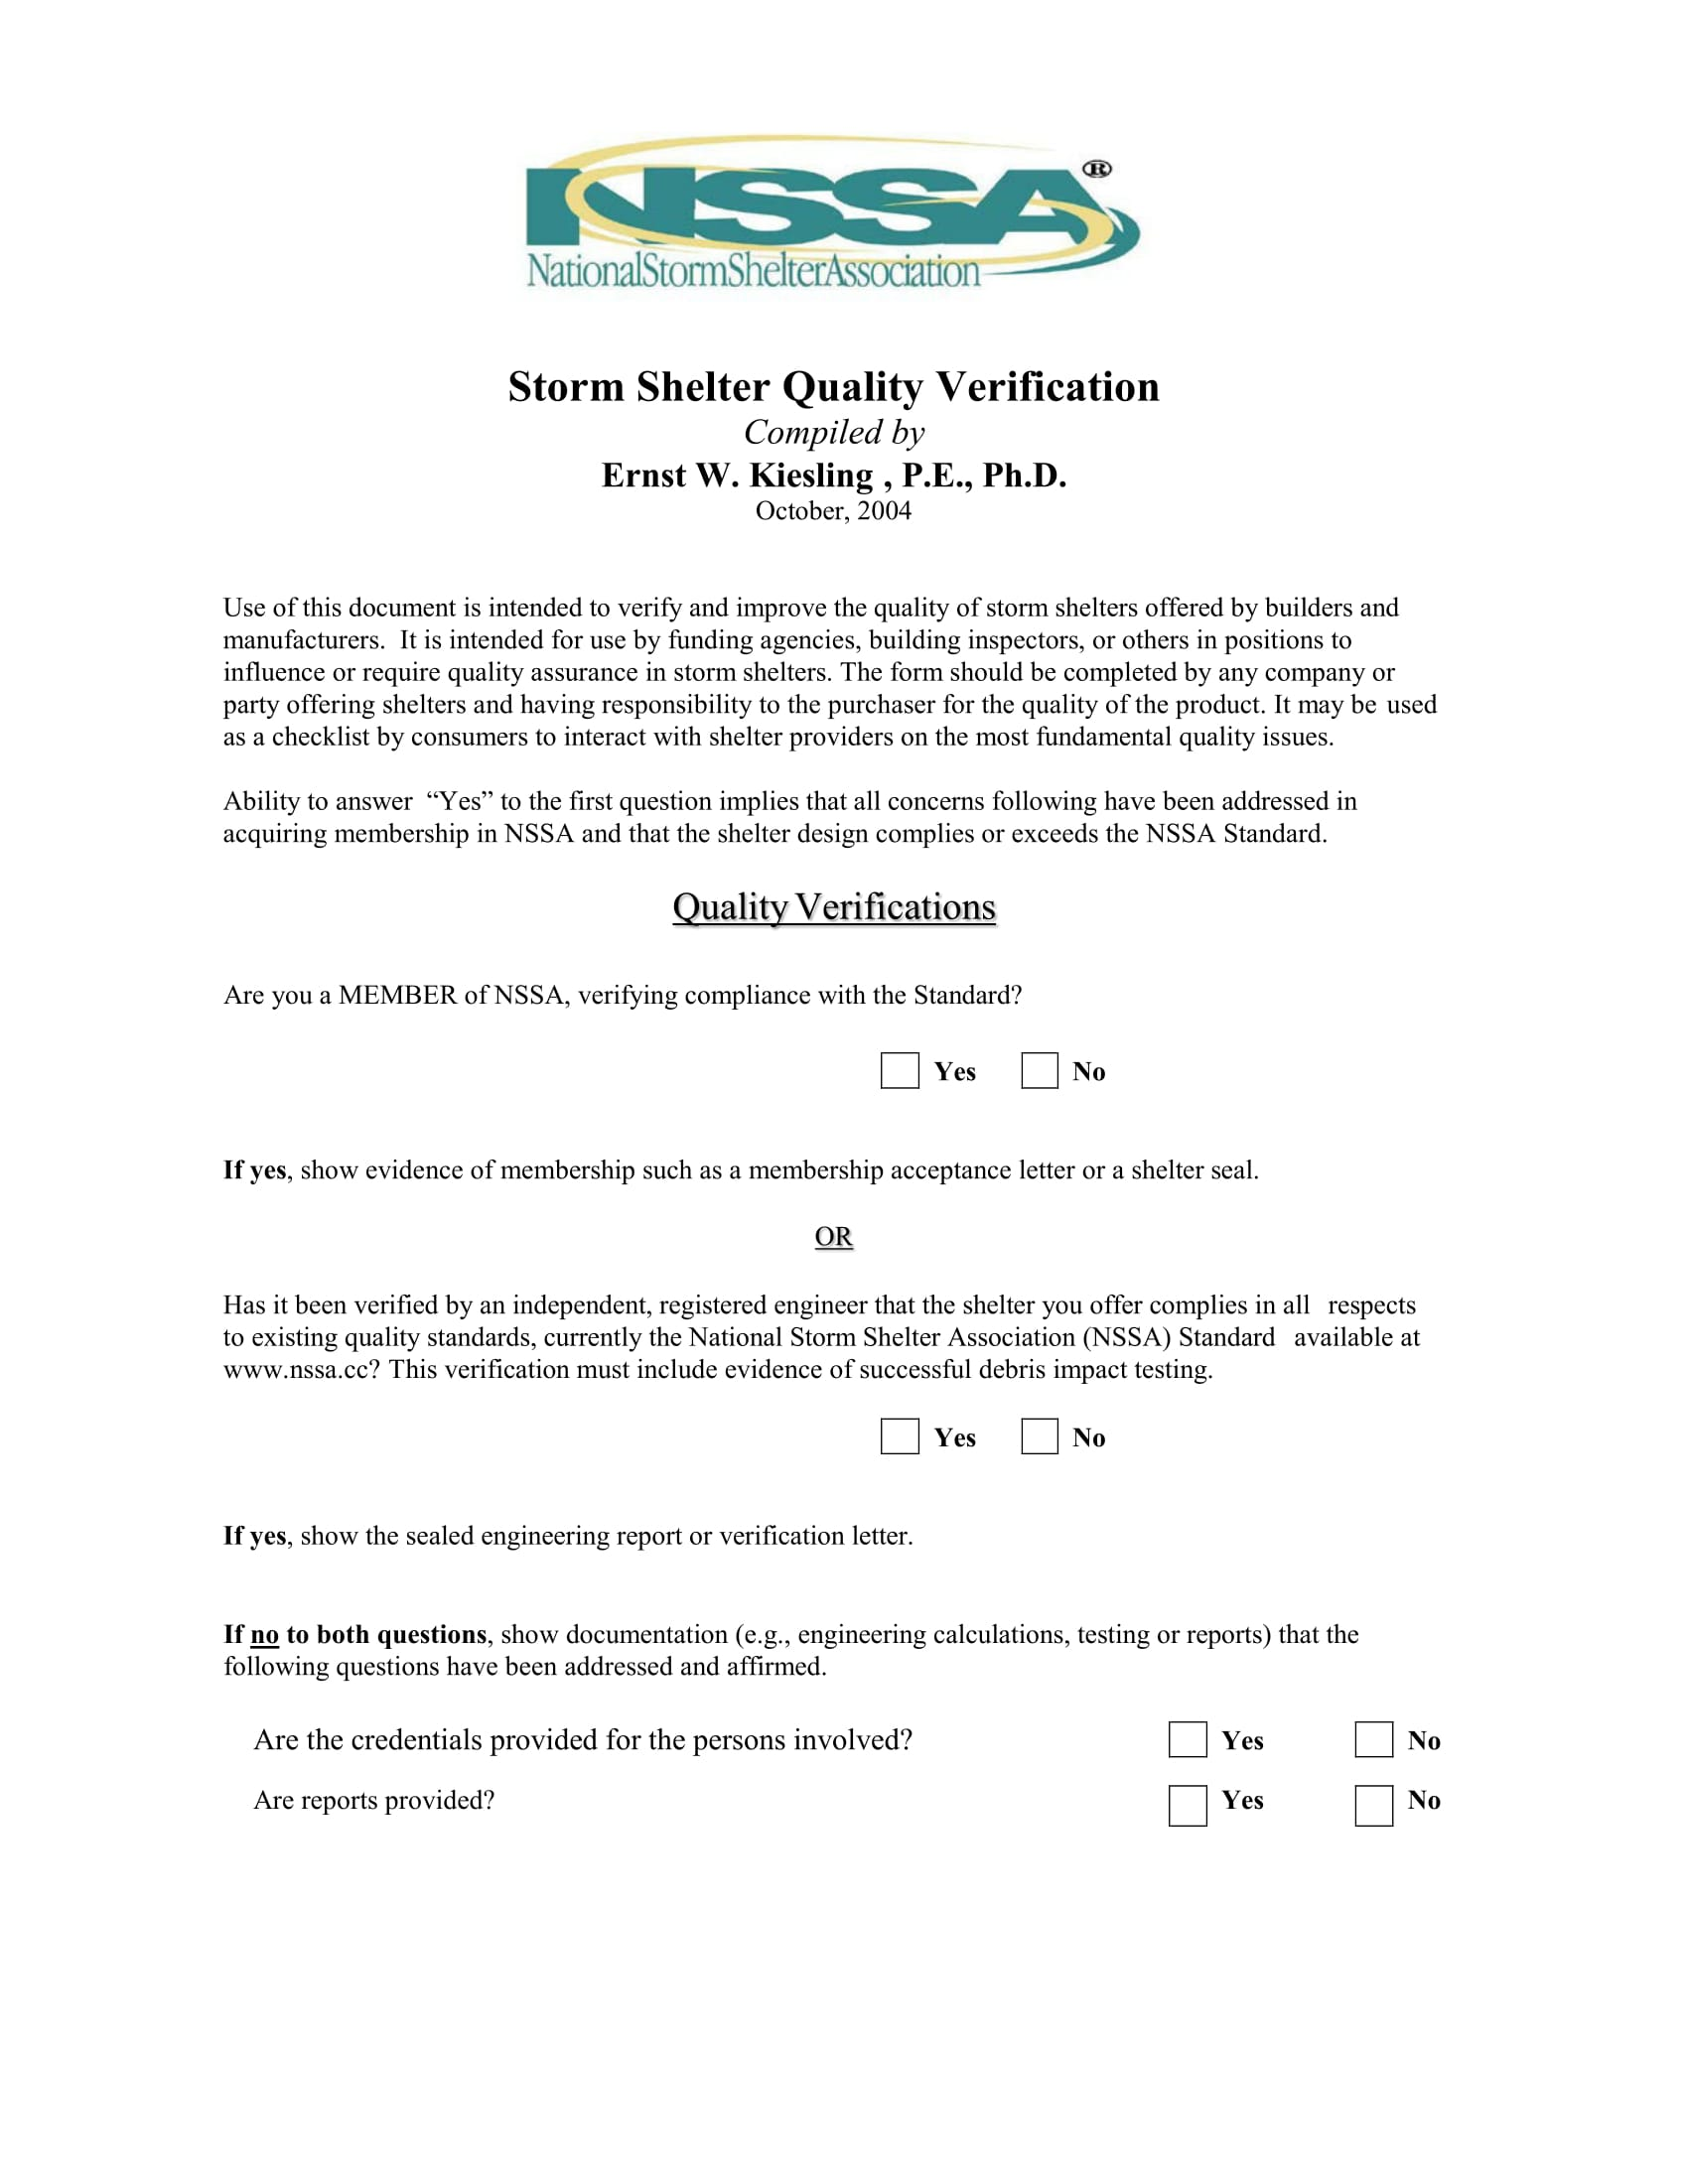 storm shelter quality verification form 1